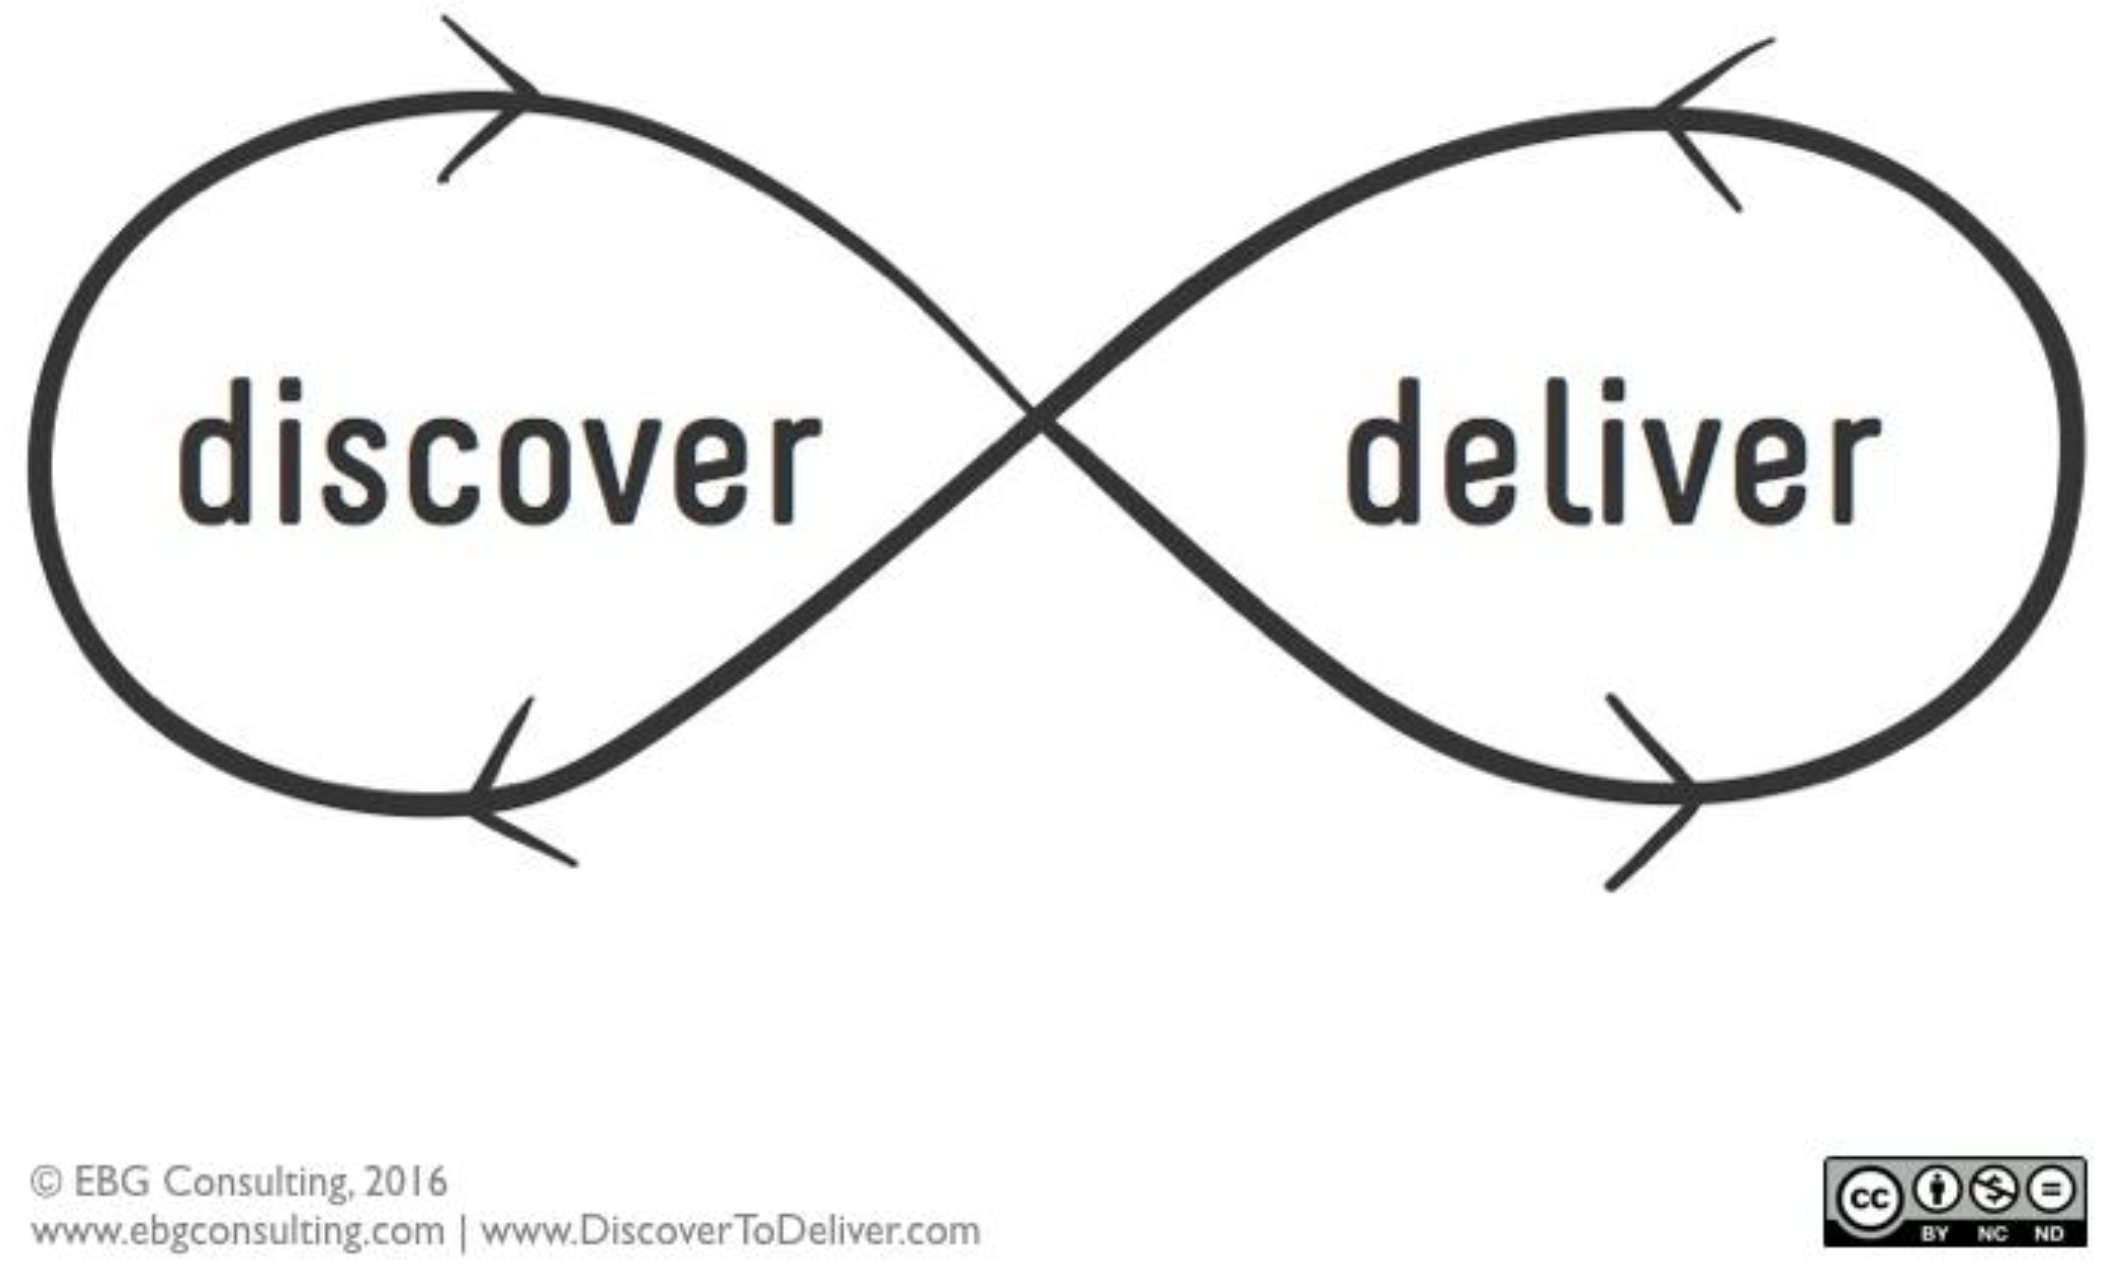 Discover_Deliver